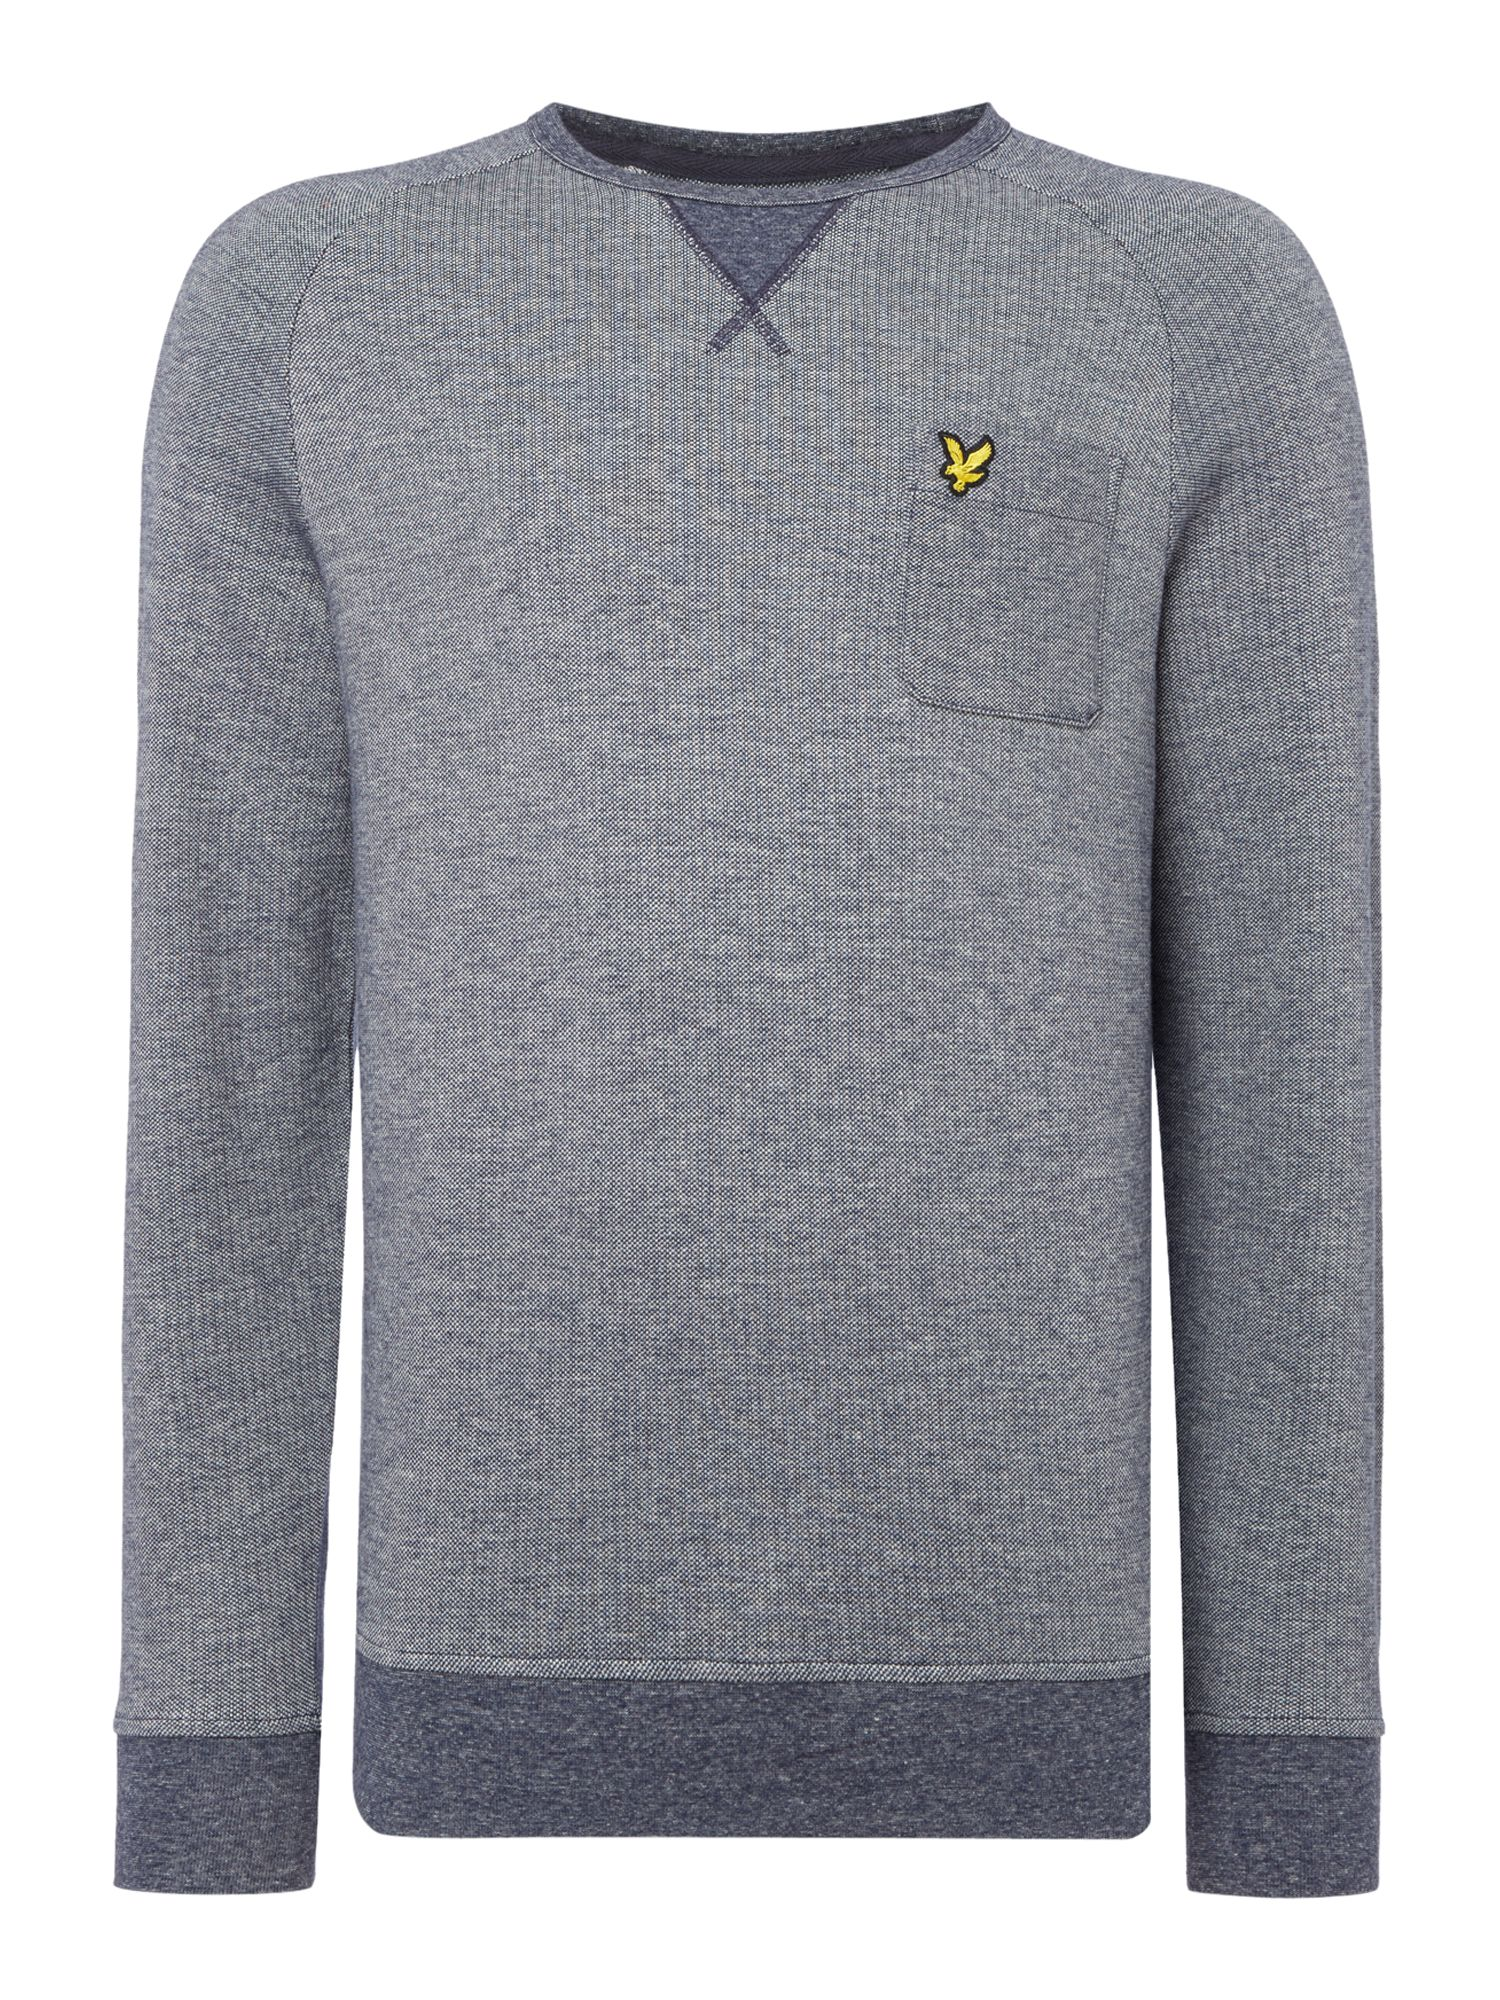 Men's Lyle and Scott Oxford crew neck sweatshirt, Blue